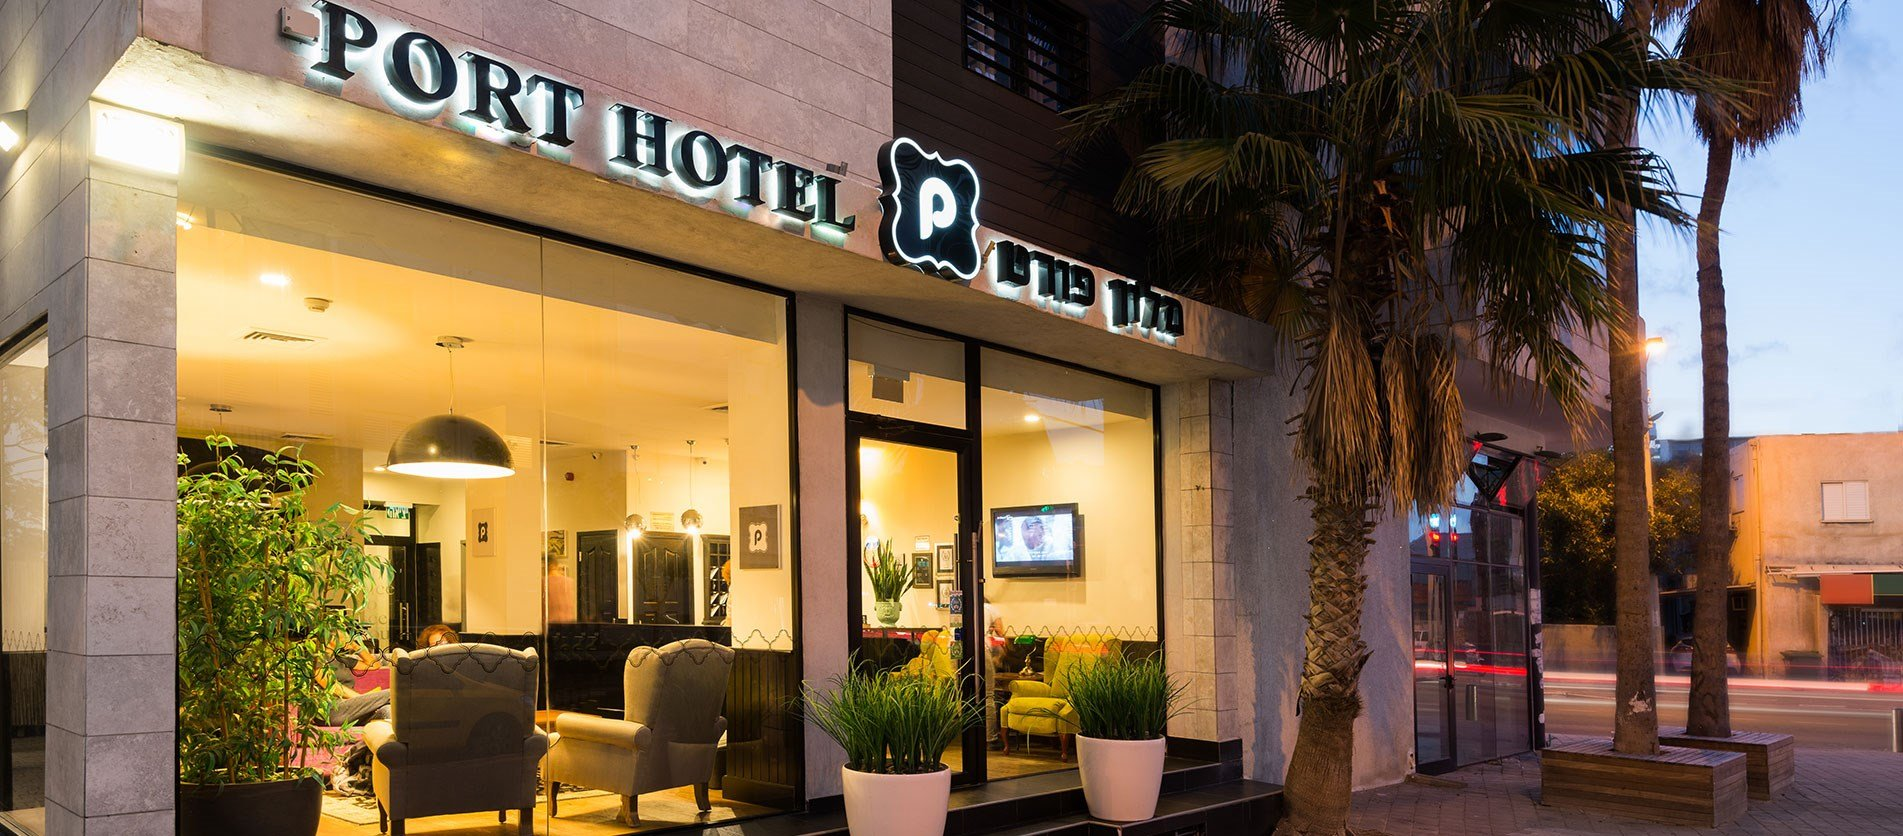 Port hotel tlv boutique hotel tel aviv for Boutique hotel israel